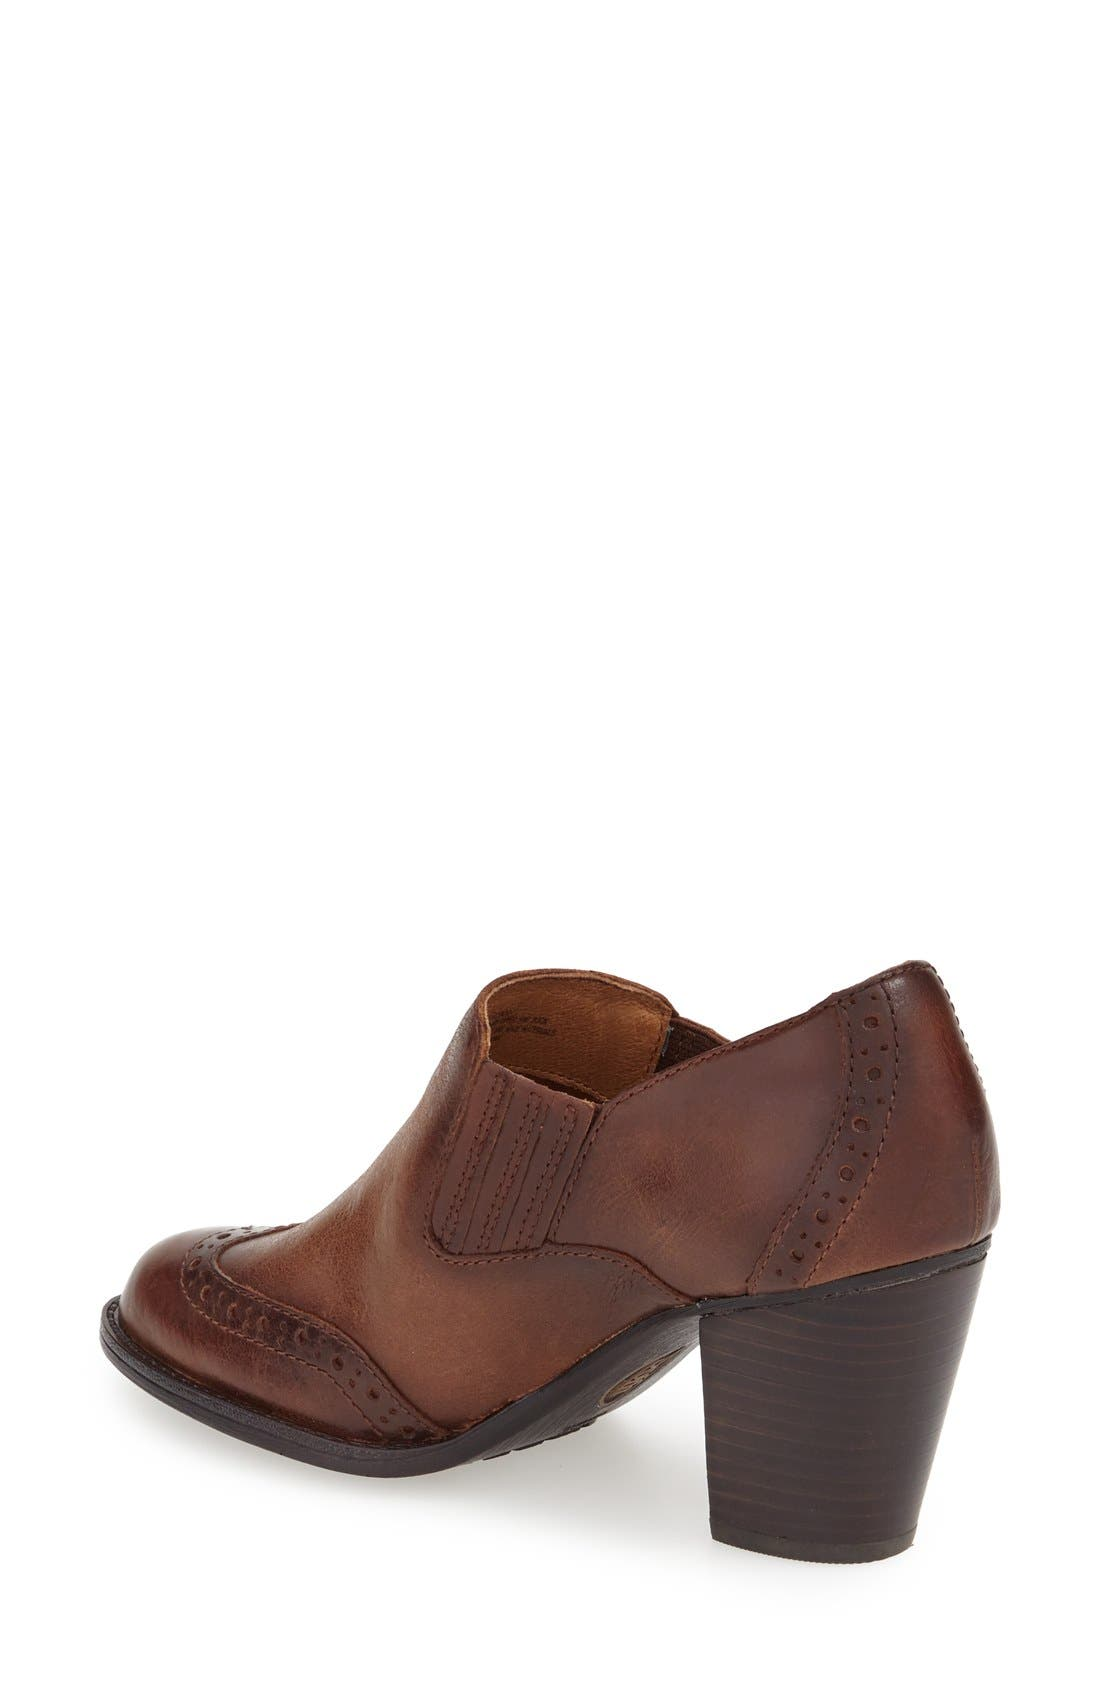 Alternate Image 2  - Söfft 'Weston' Block Heel Bootie (Women)